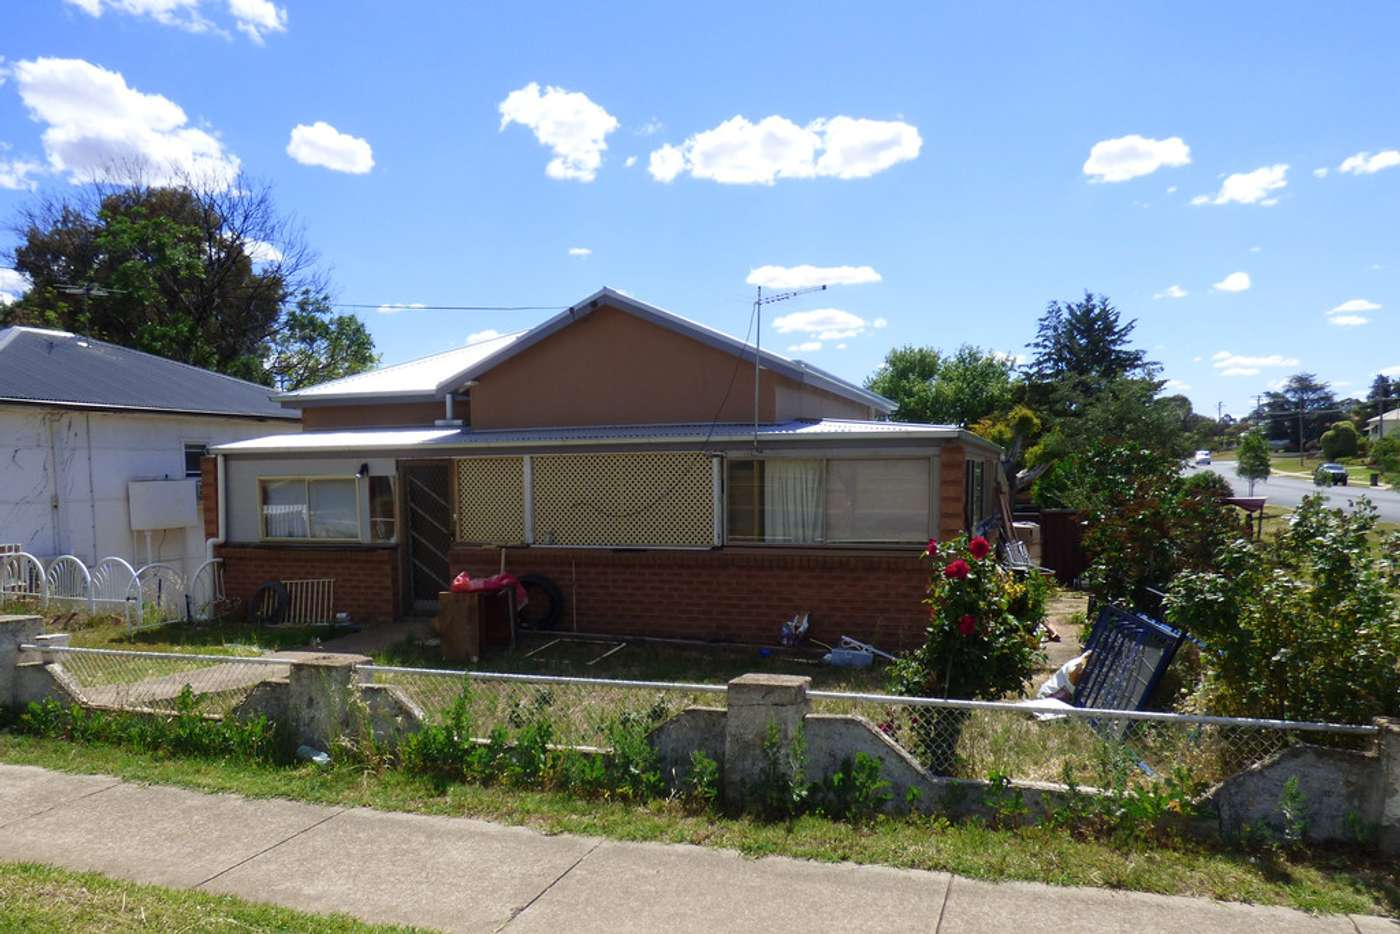 Main view of Homely house listing, 1 Main Street, Young NSW 2594